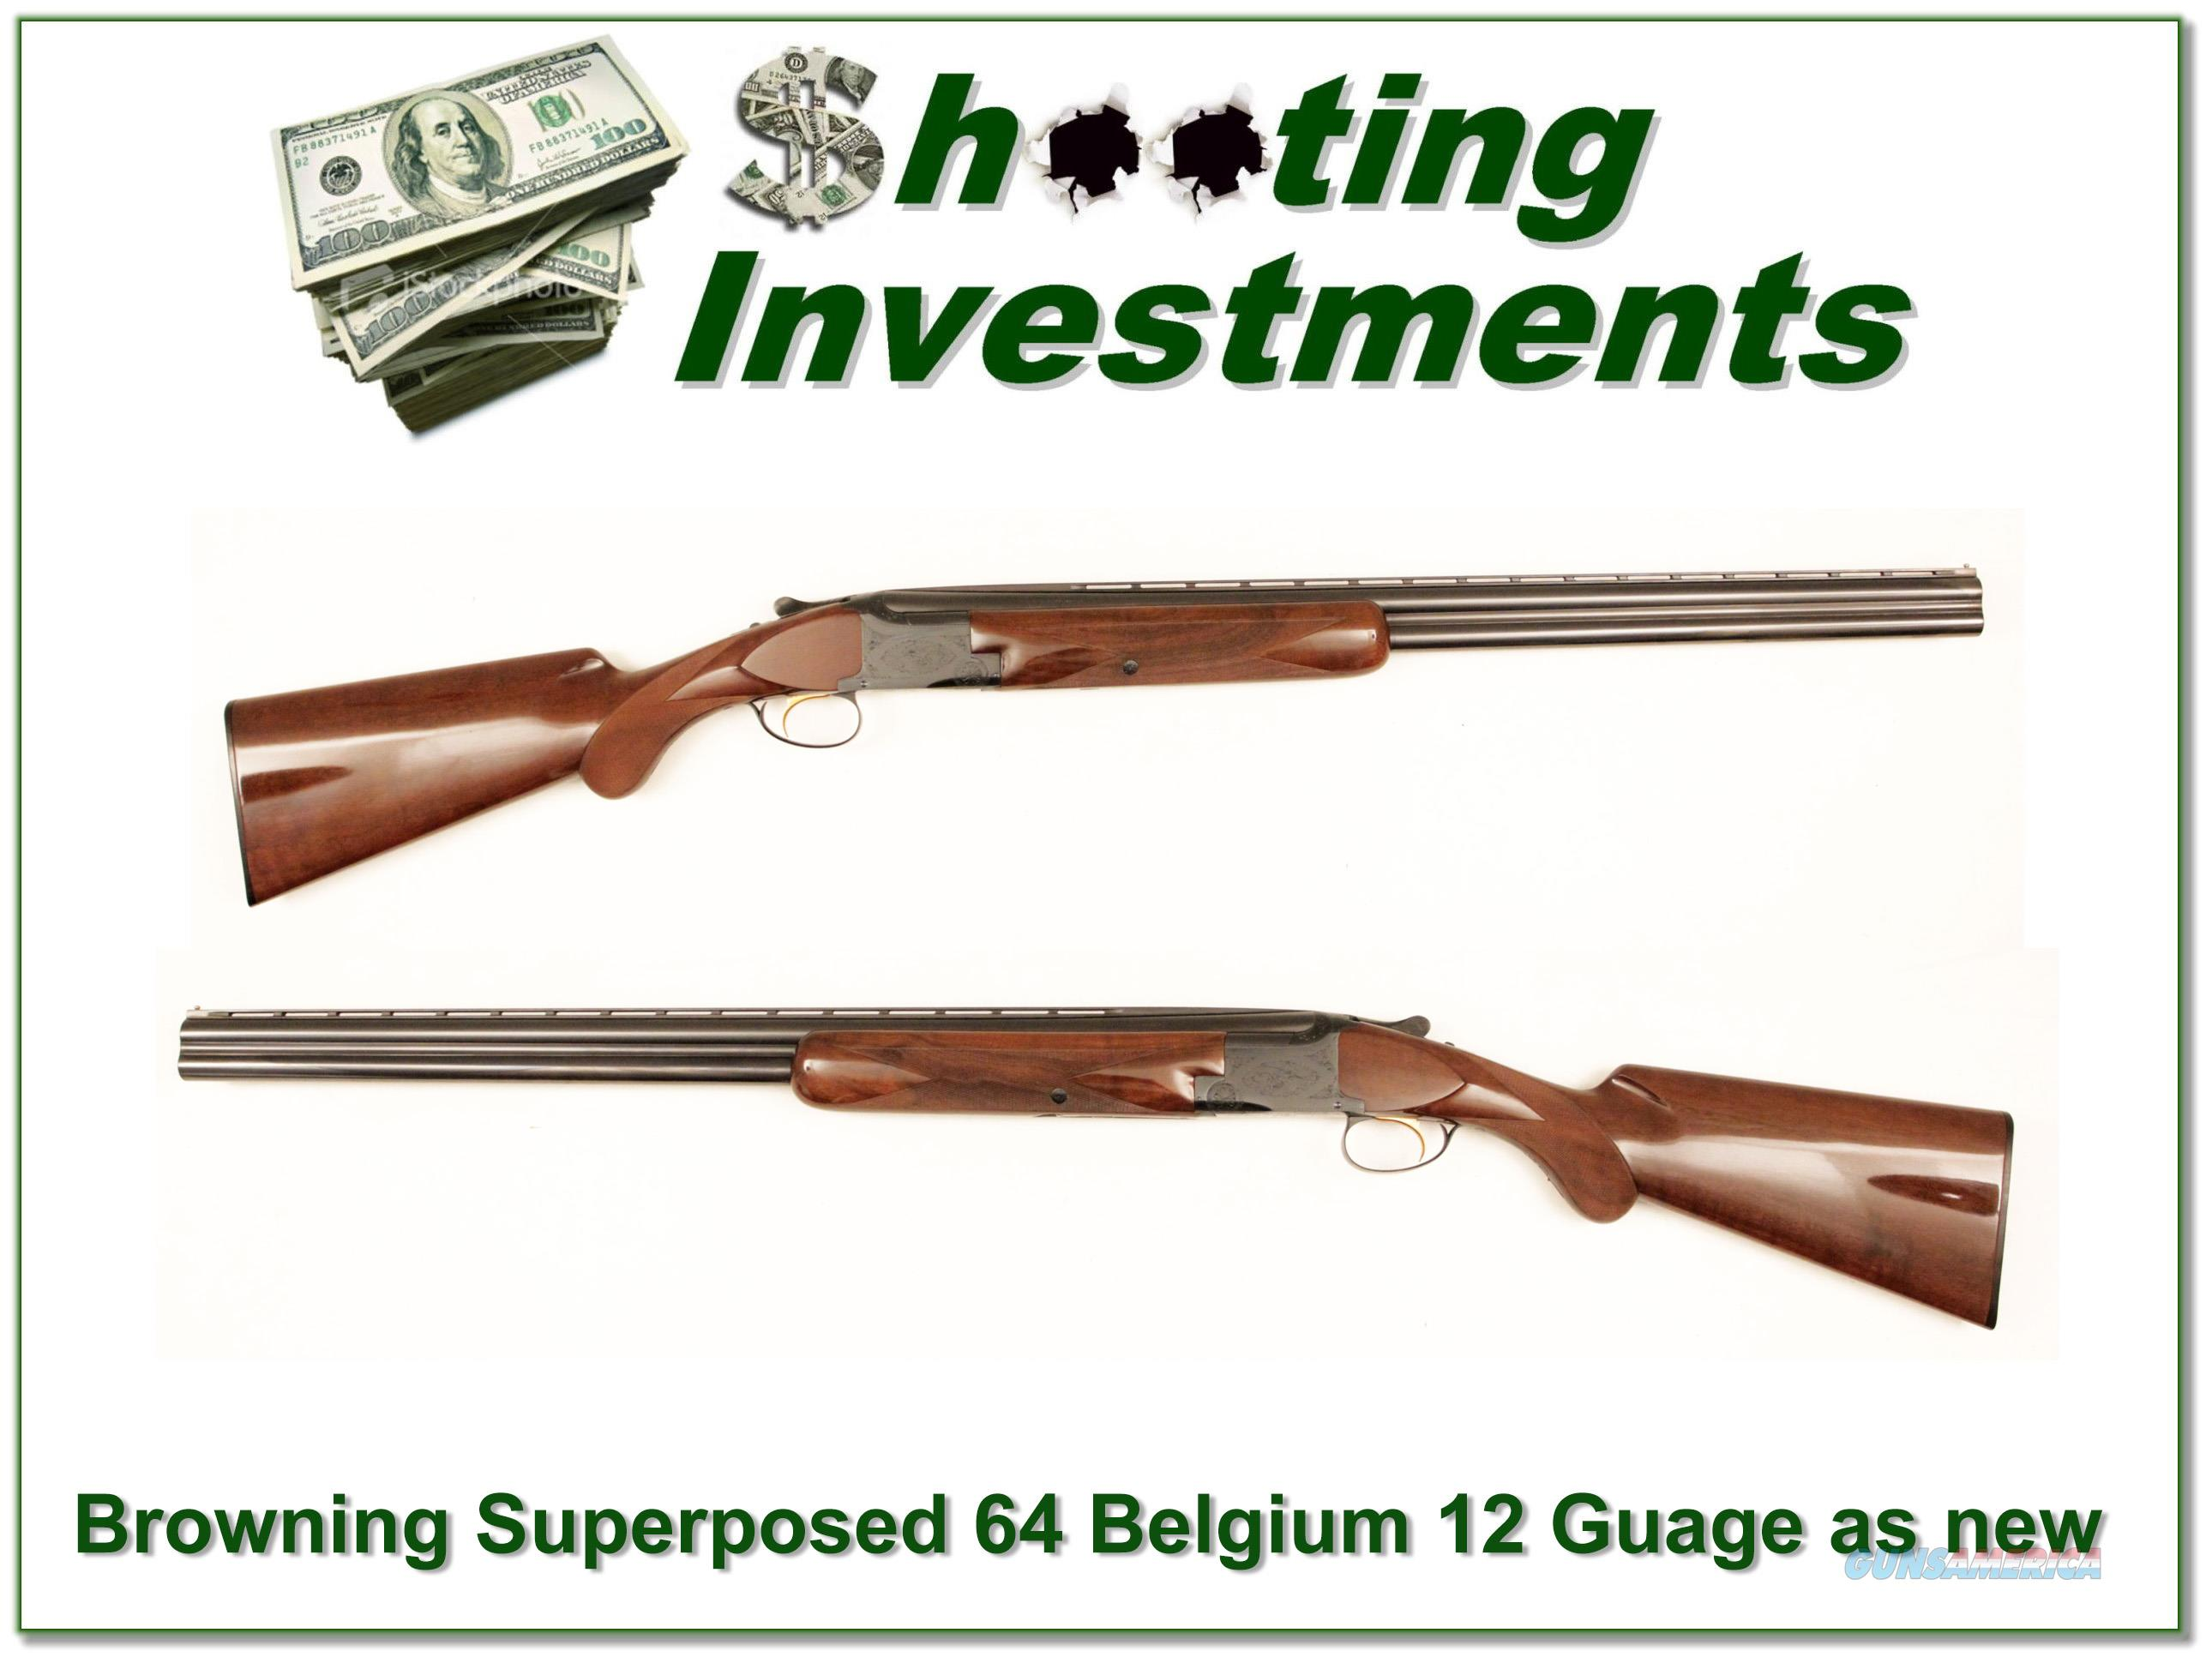 Browning Superposed 12 Gauge 64 Belgium RKLT as new!  Guns > Shotguns > Browning Shotguns > Over Unders > Belgian Manufacture